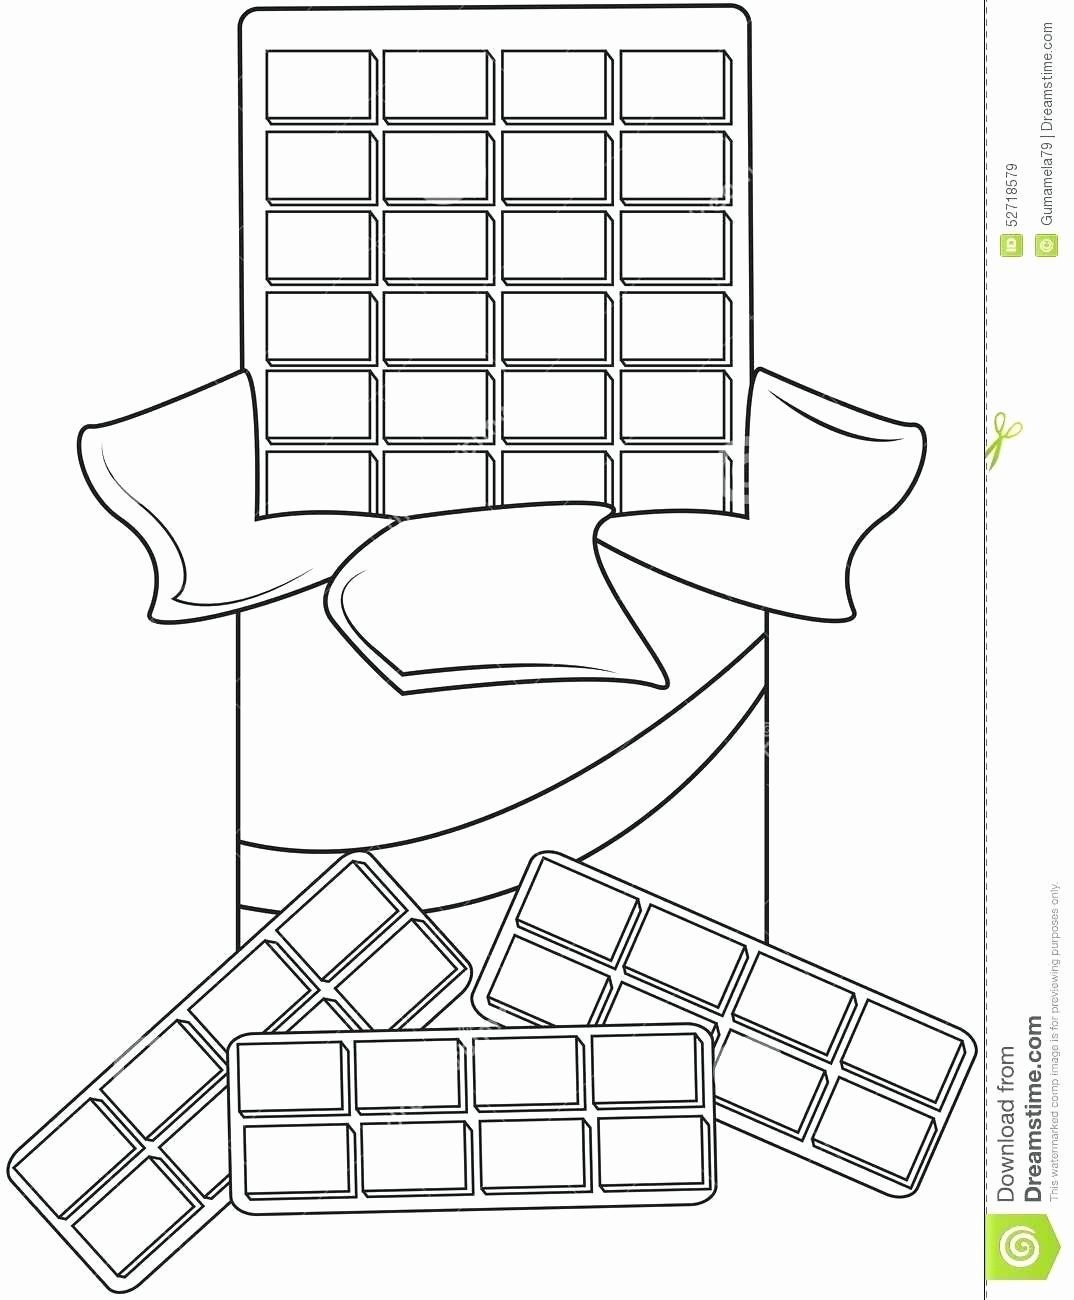 Chicken Nuggets Coloring Page Elegant Coloring Pages Candy Bar